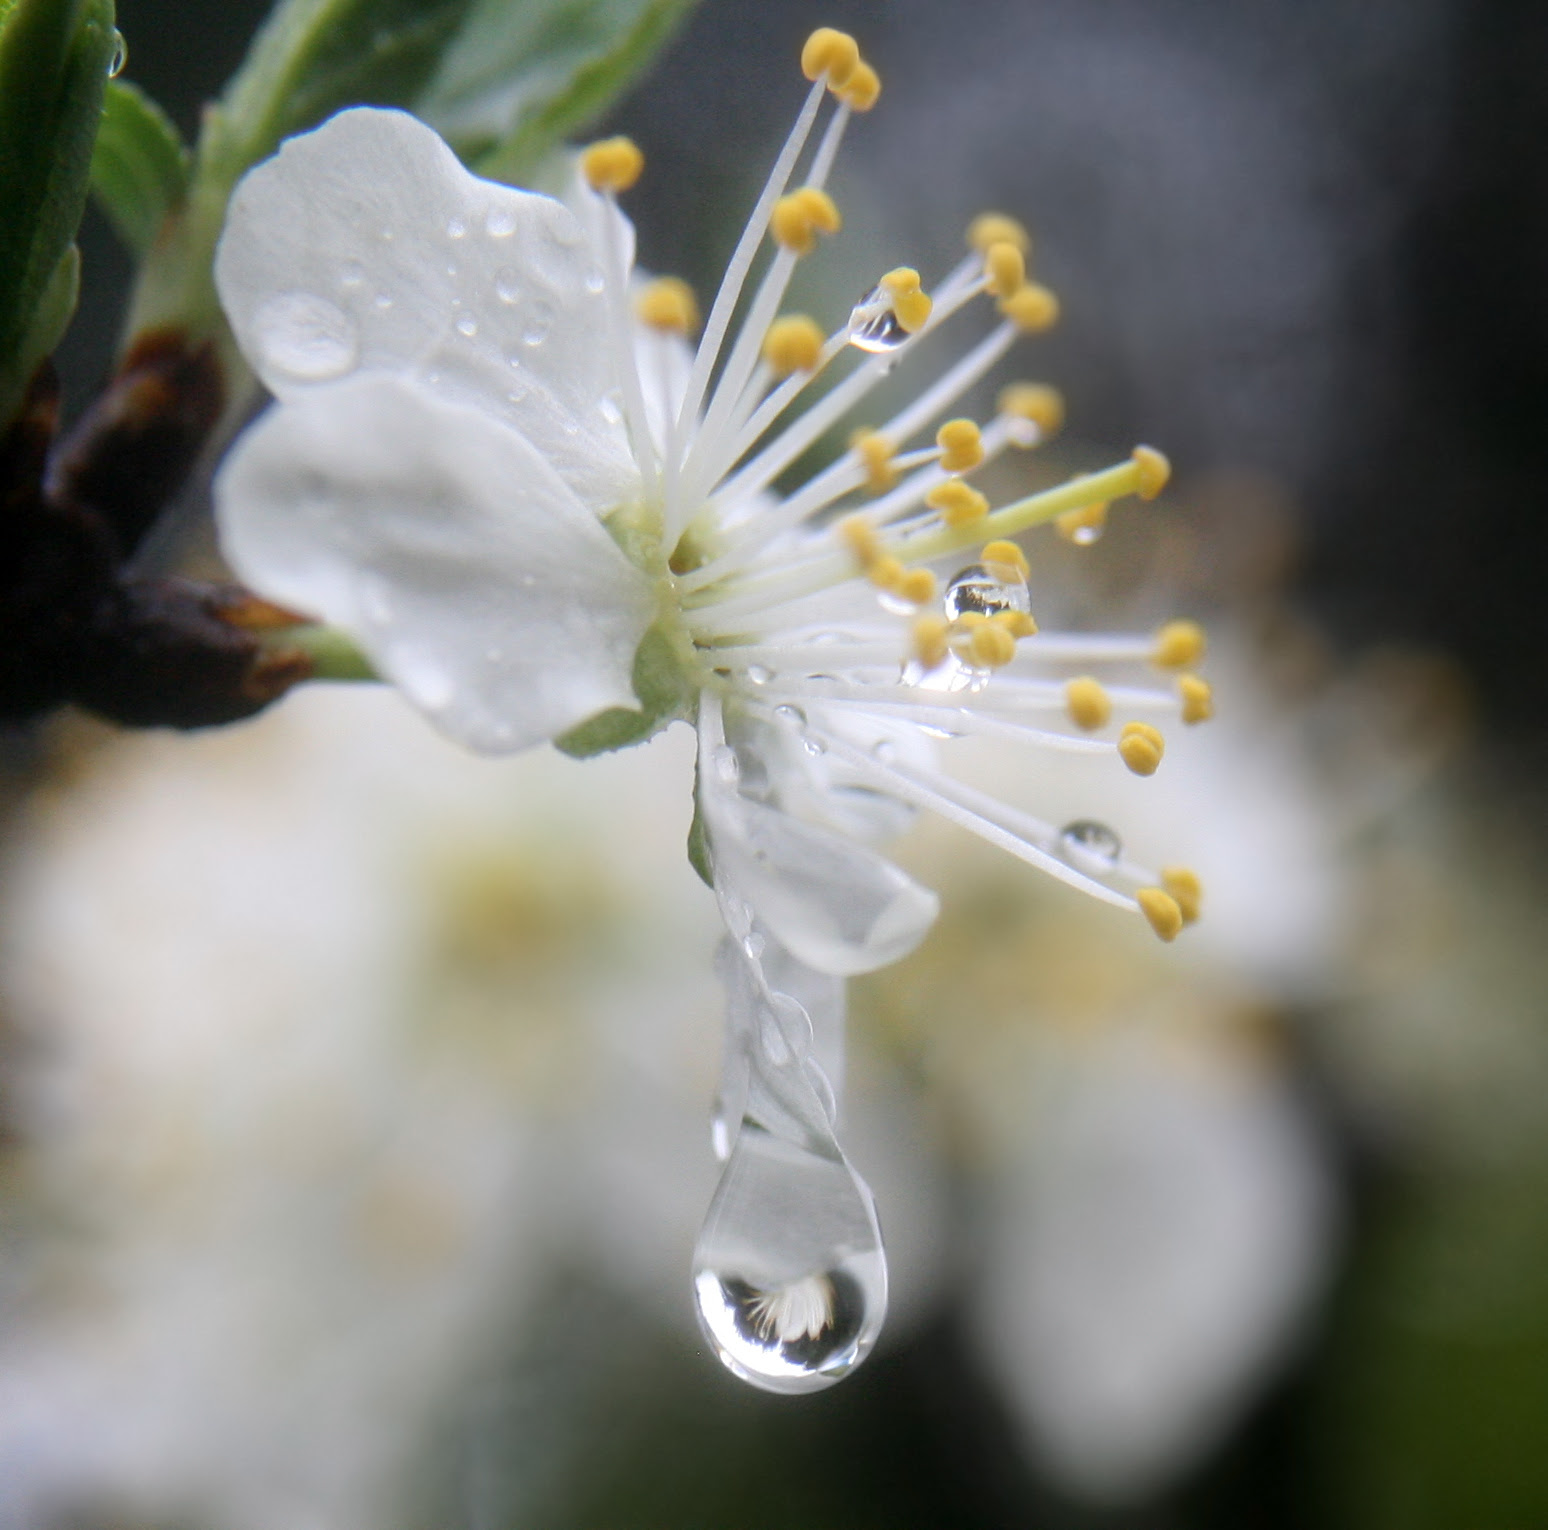 http://upload.wikimedia.org/wikipedia/commons/a/a0/A_flower_refracted_in_rain_droplets.jpg